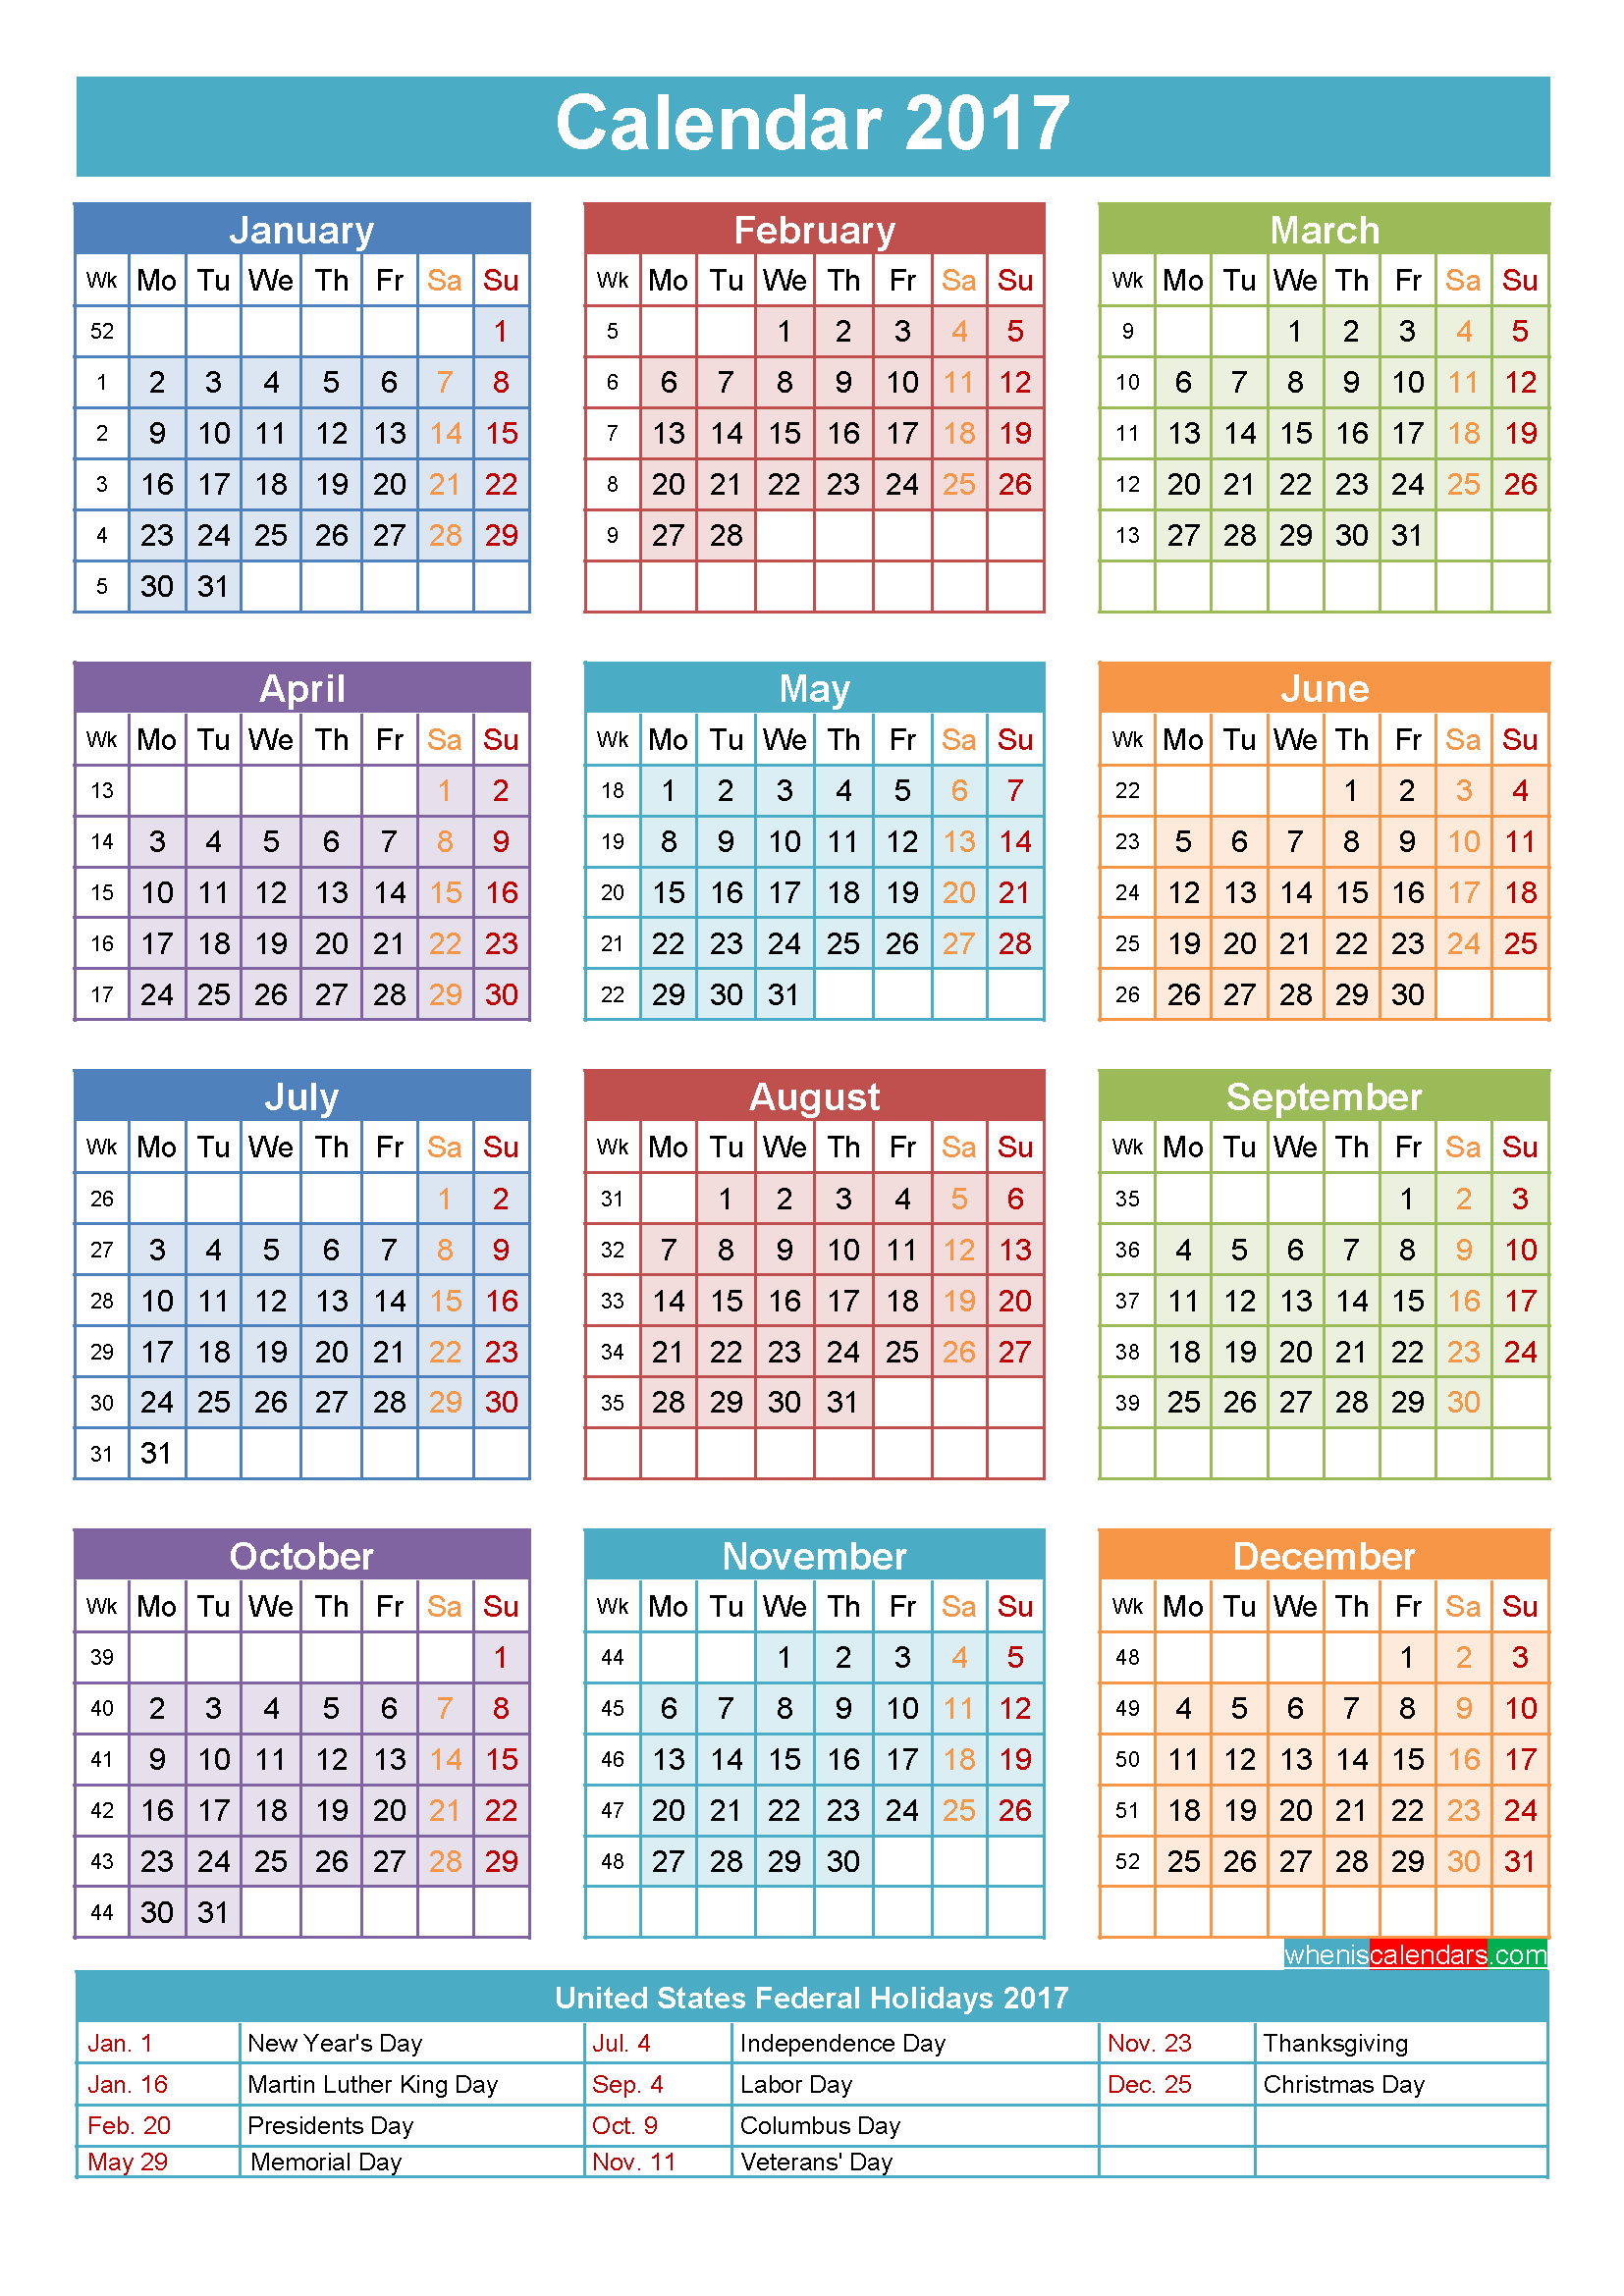 2017 Calendar With Holidays Printable Yearly Calendar Template for Free Yearly 5.5 X 8.5 Calendar 2020